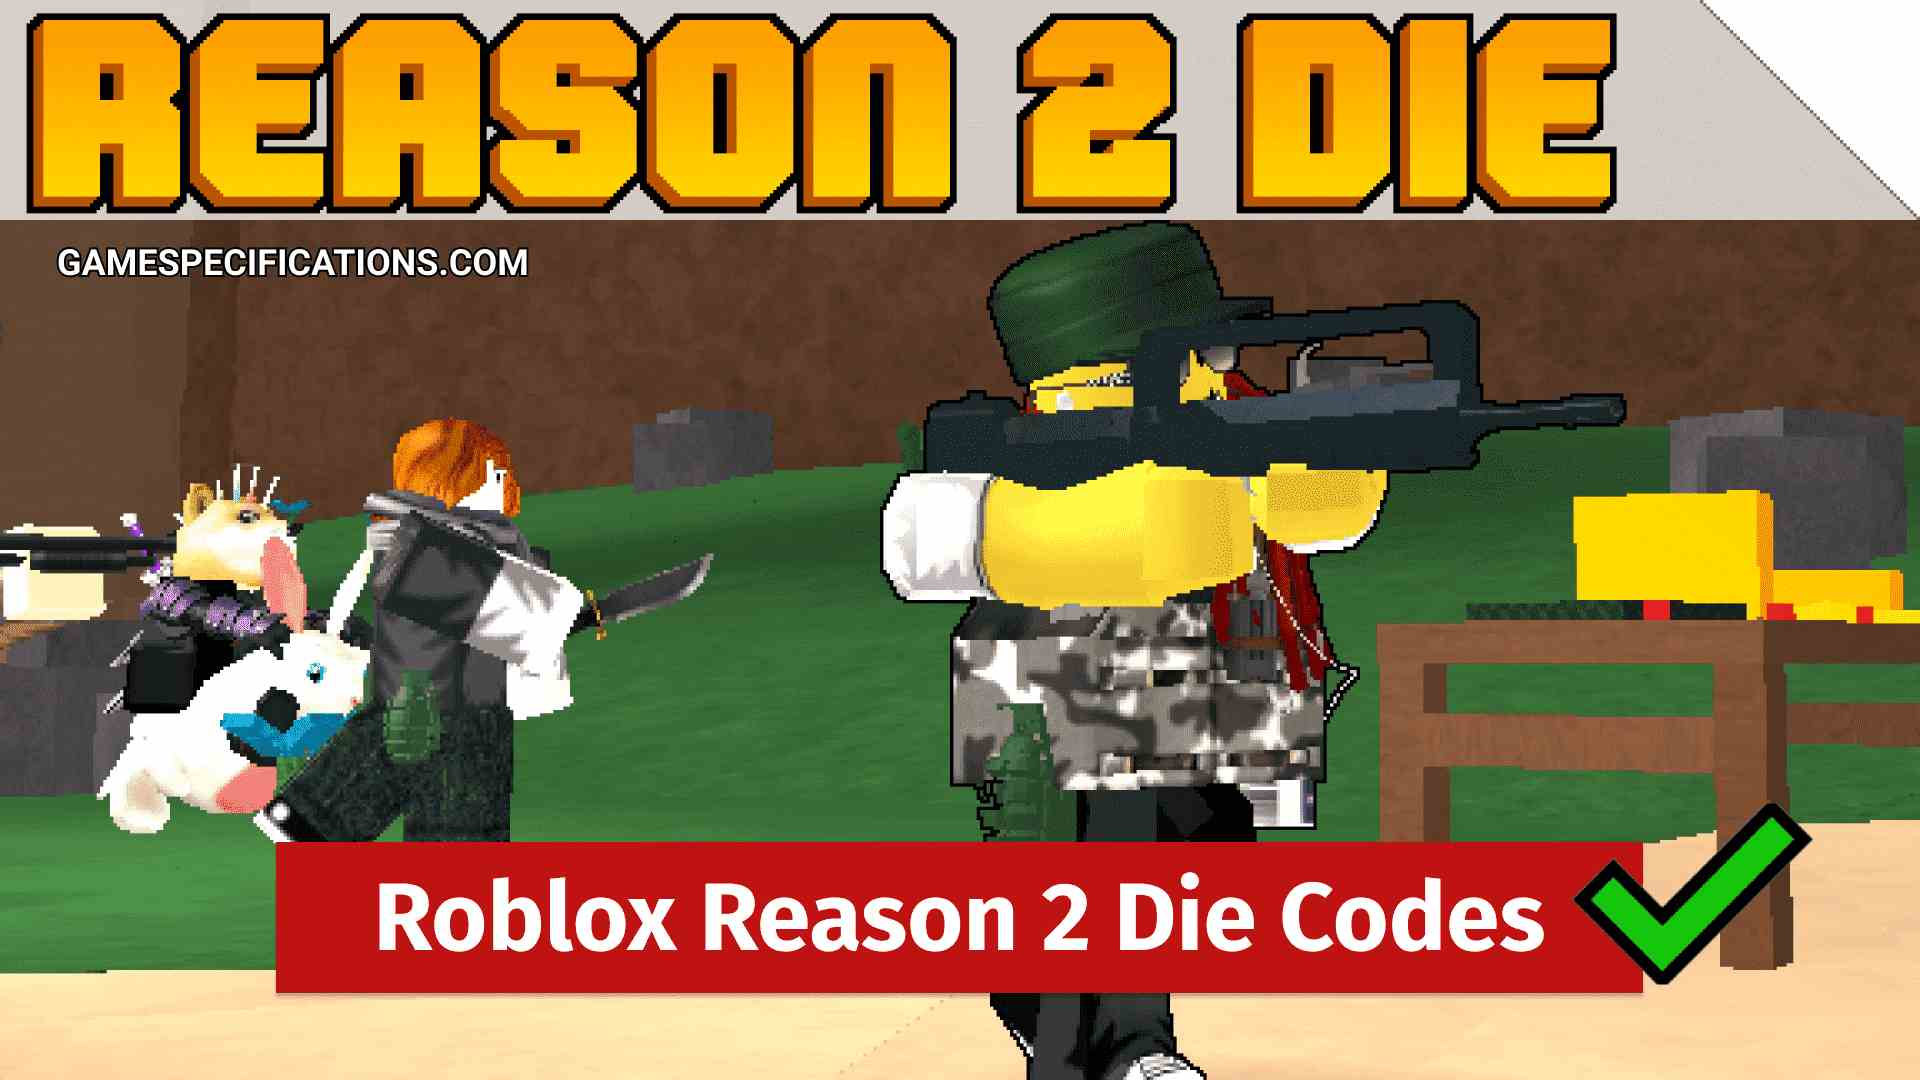 R2da Christmas Codes 2021 Roblox Reason 2 Die Codes May 2021 Game Specifications